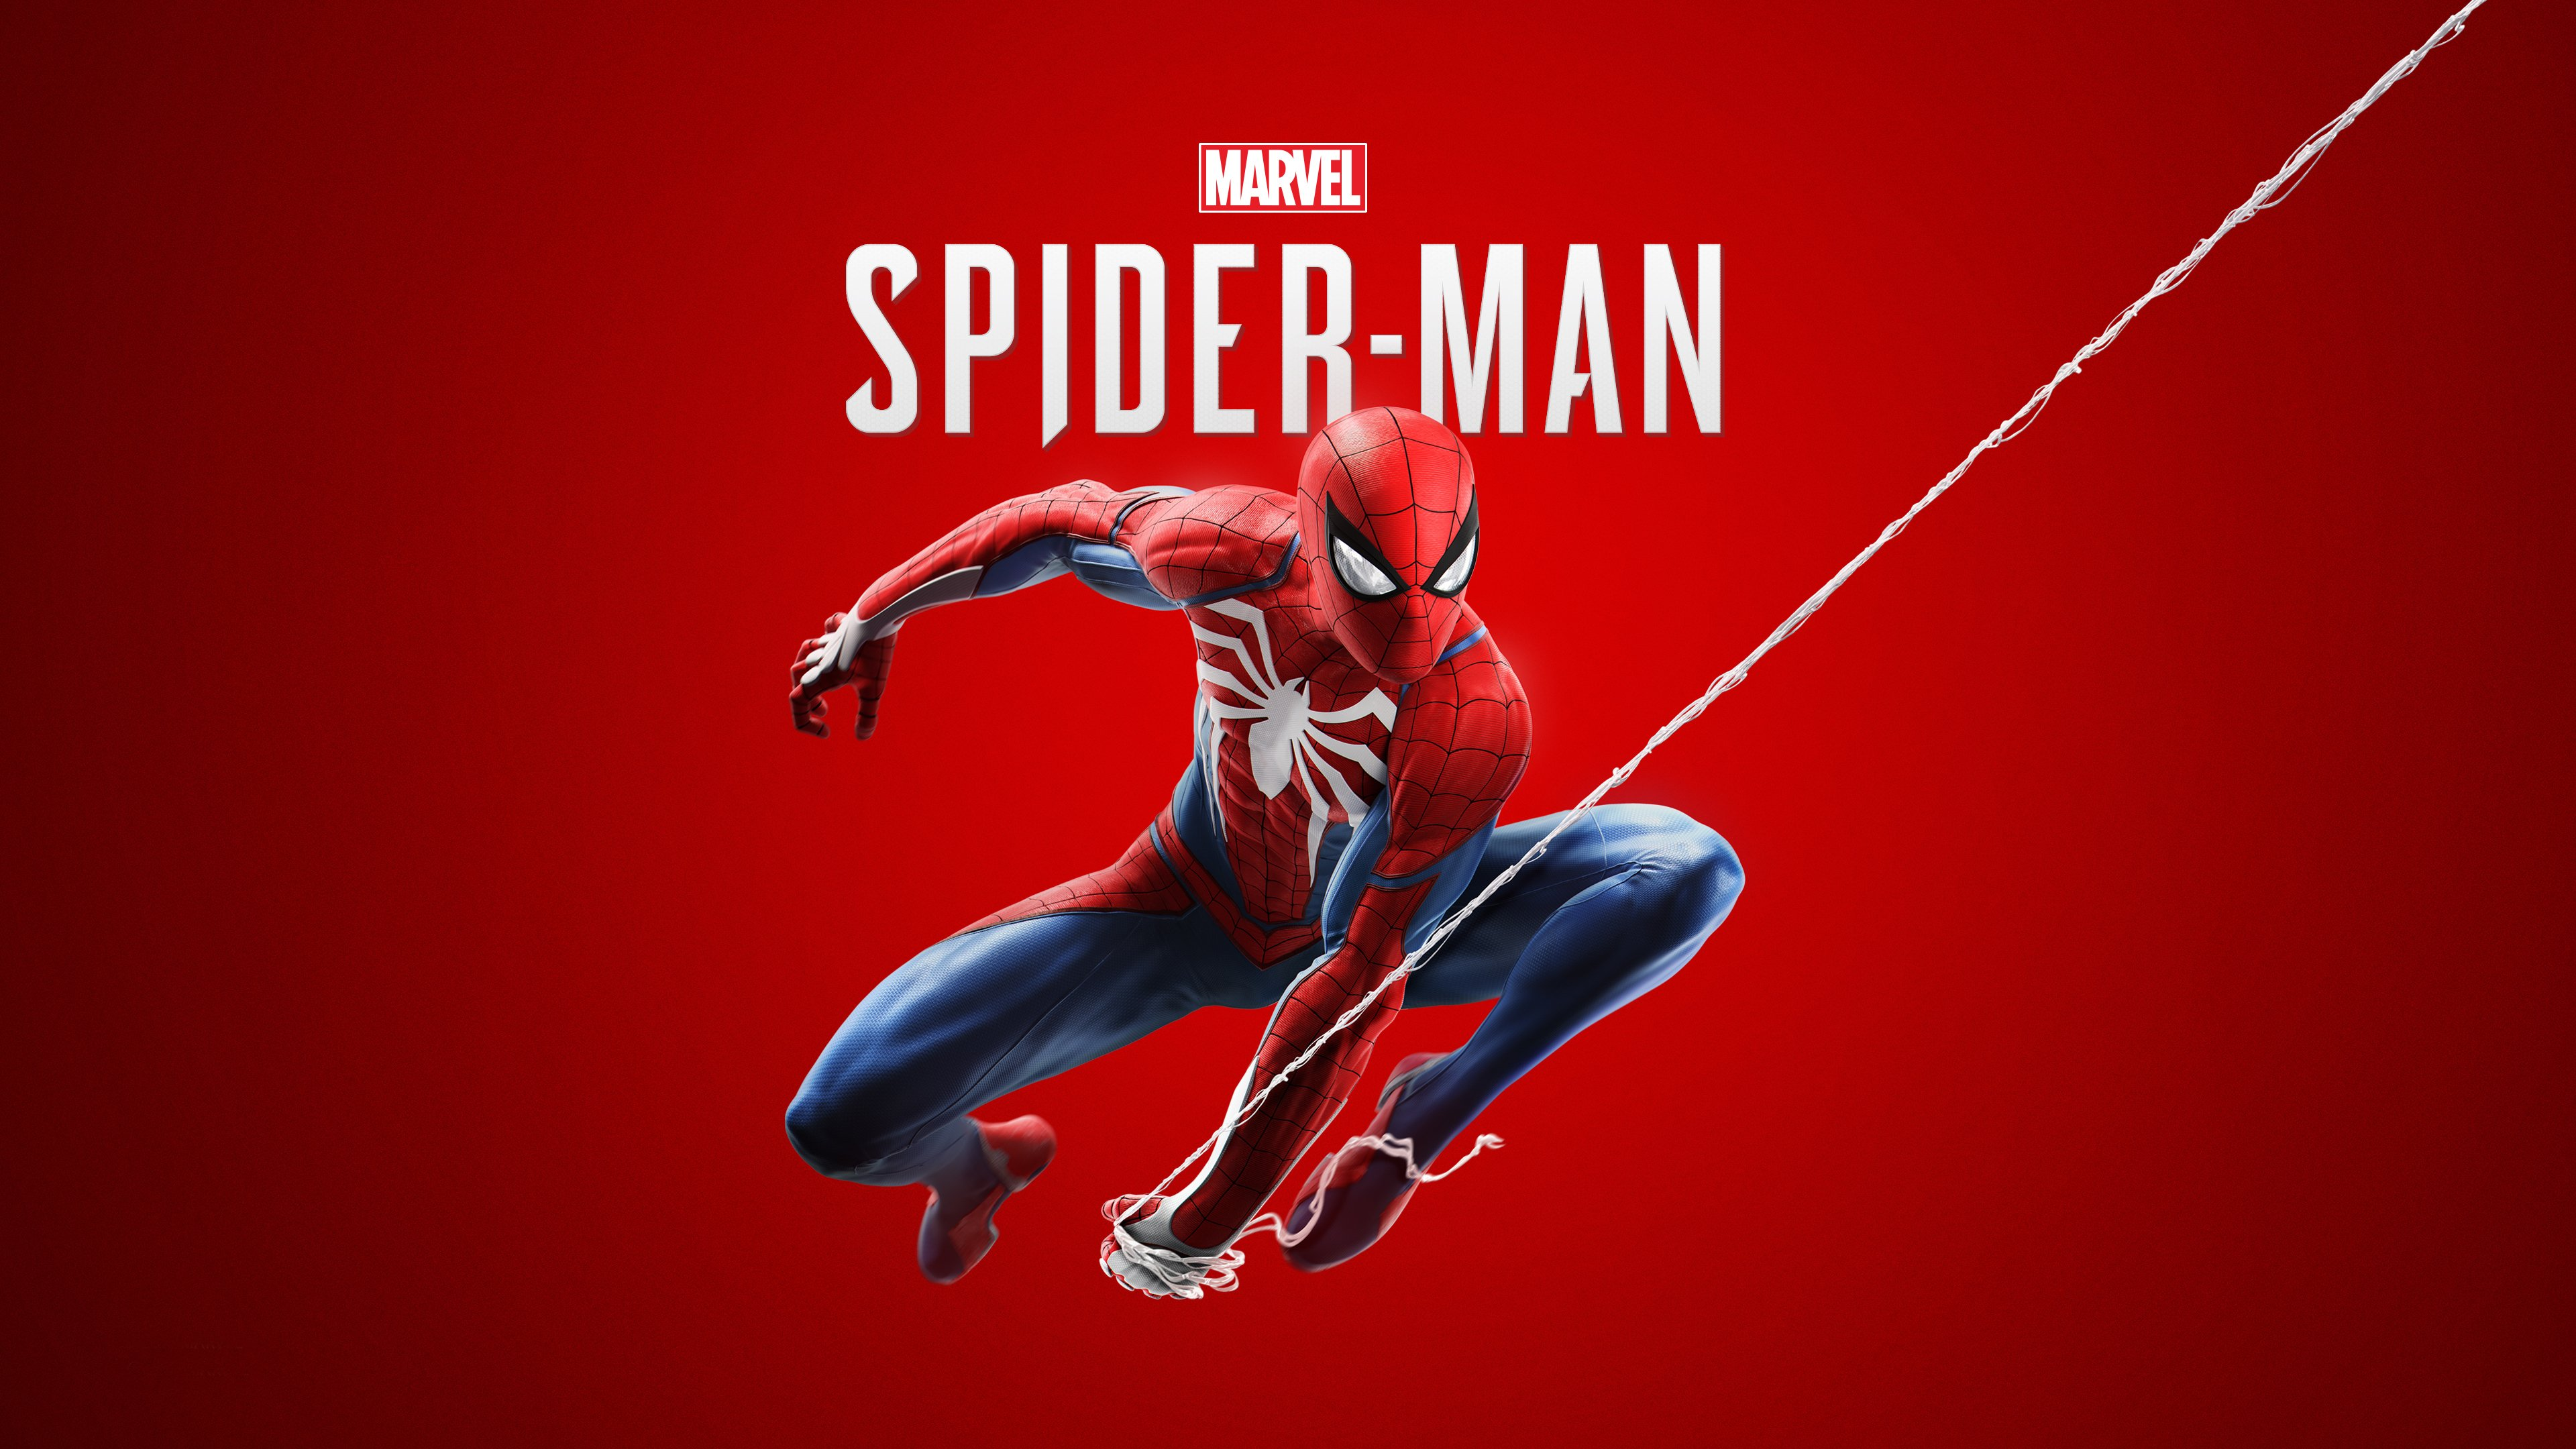 Spider Man PS4 Video Game 4k Wallpaper